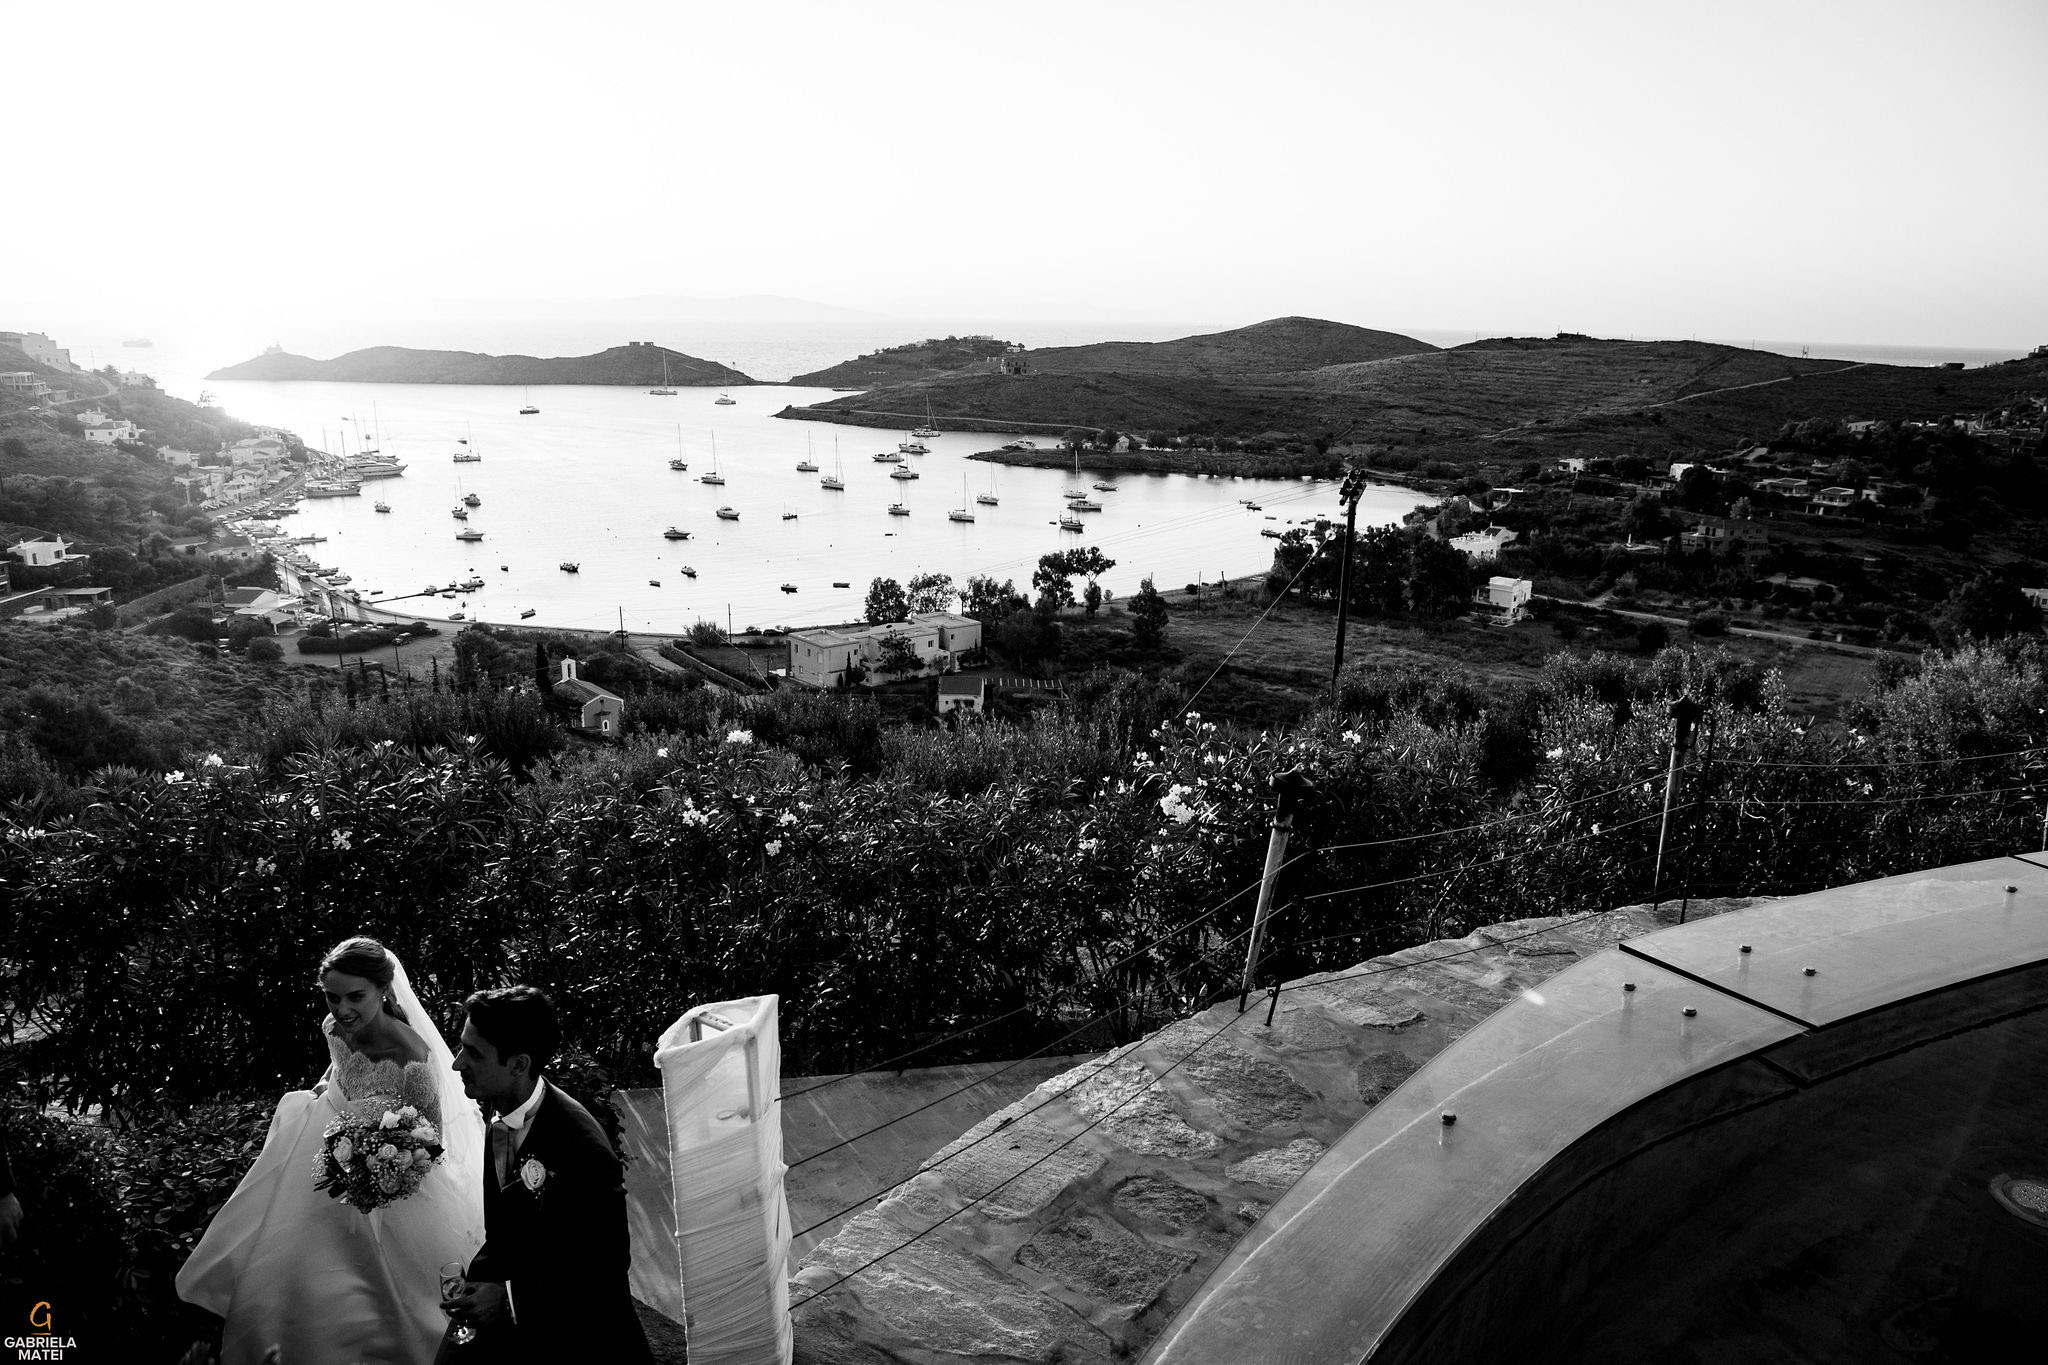 View of the Agean Sea from Aegis Suites wedding venue on Kea Island